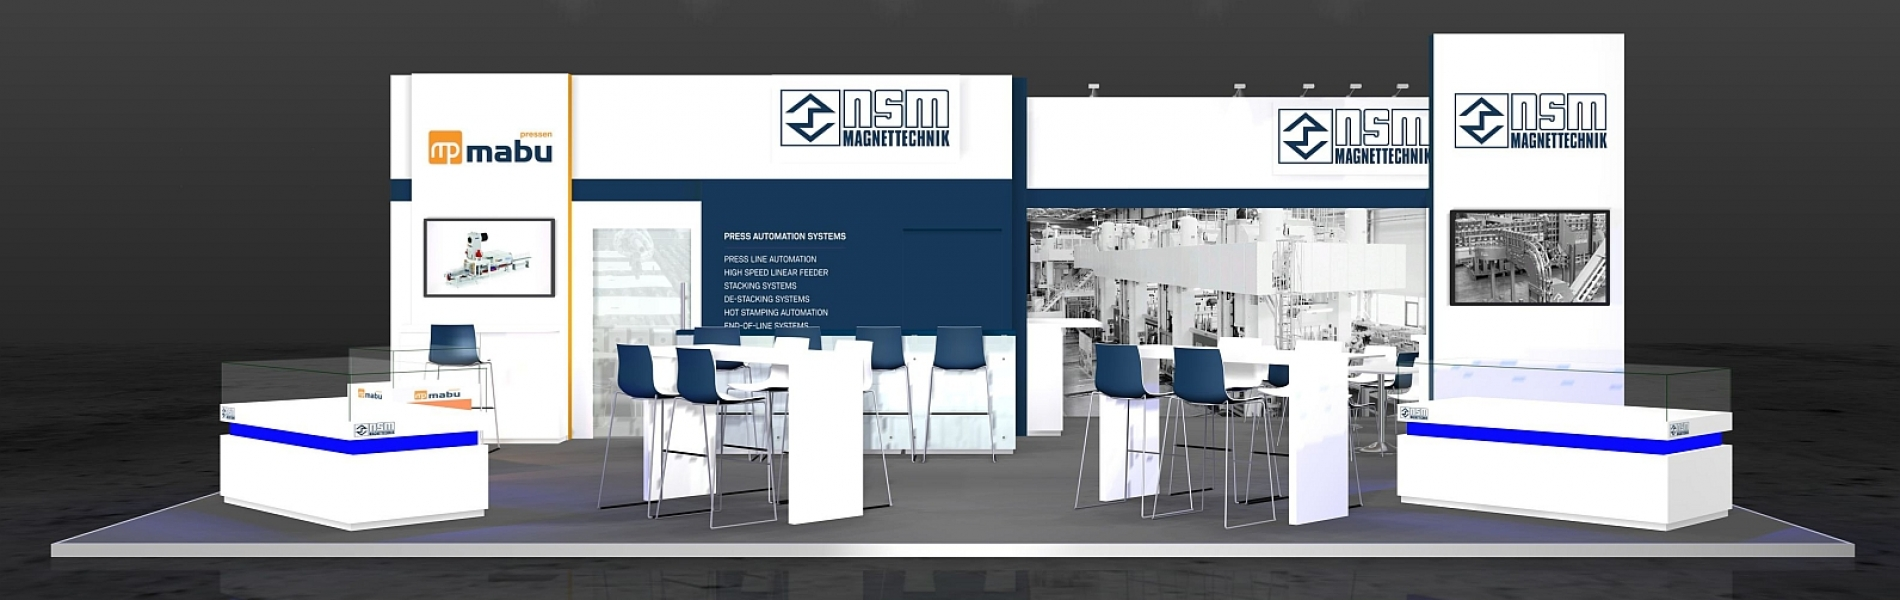 NSM Magnettechnik - Trade Fair